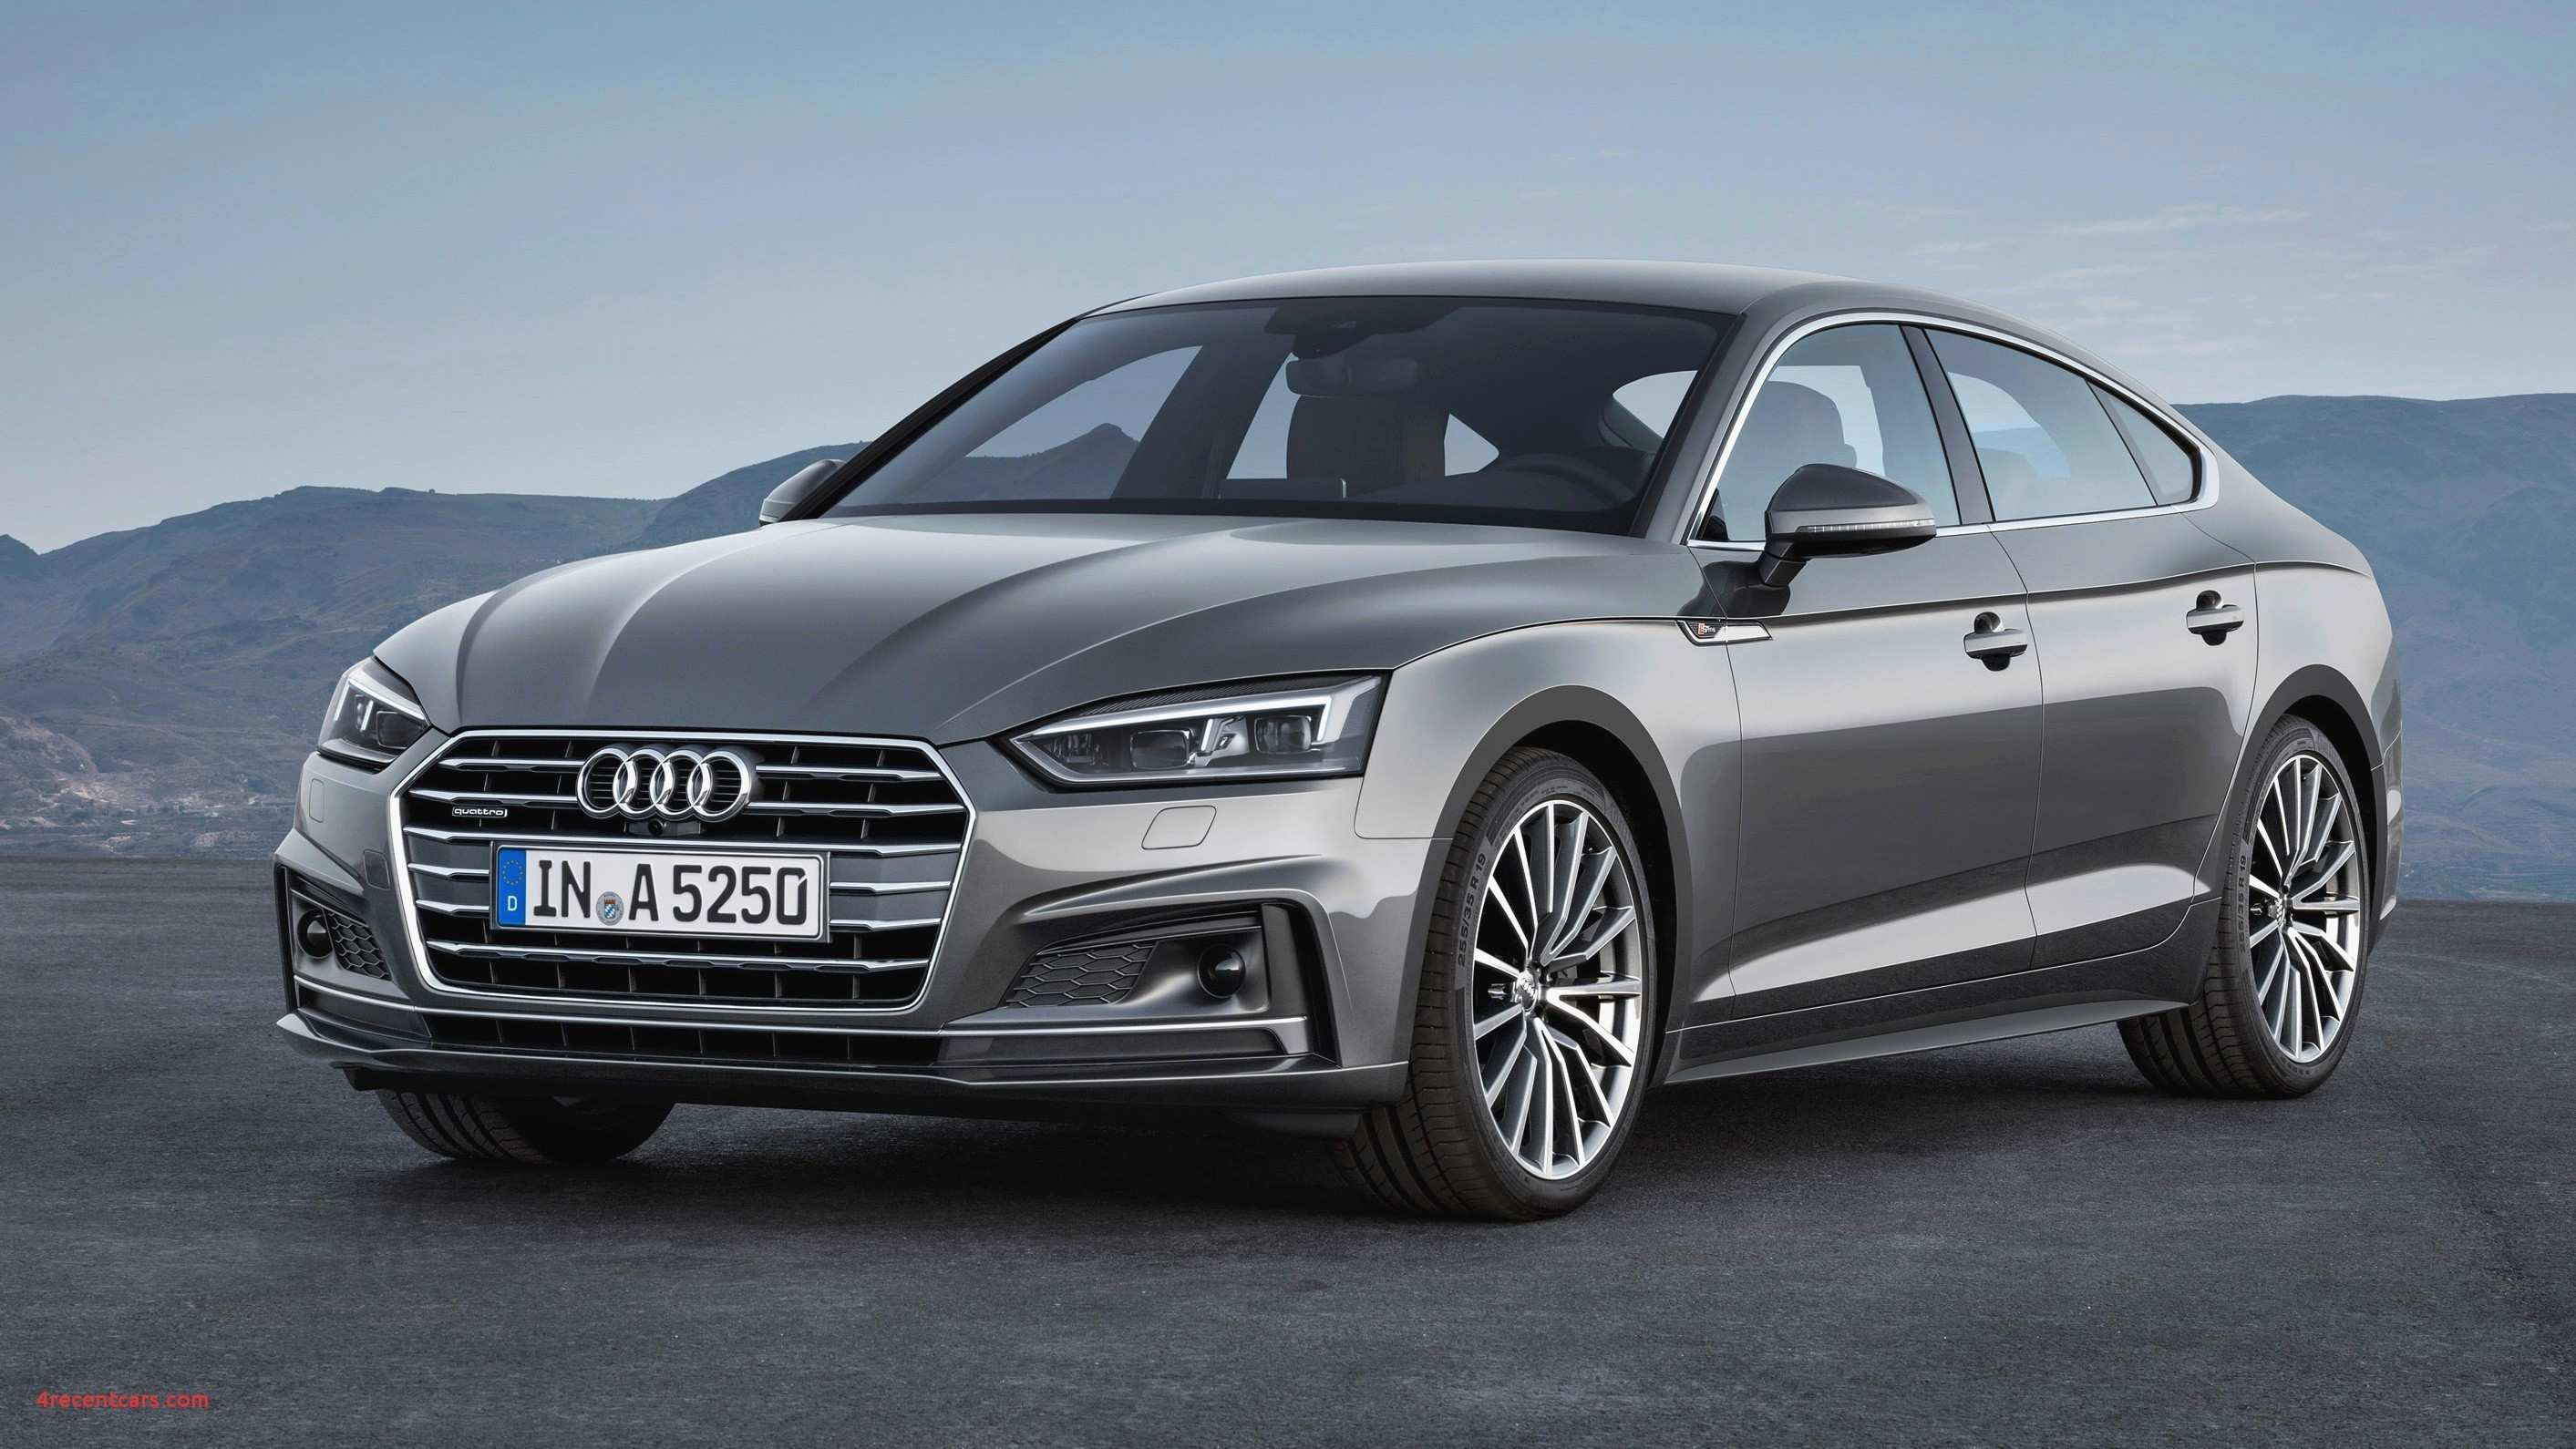 68 New The Audi A6 2019 Launch Date Review Speed Test for The Audi A6 2019 Launch Date Review